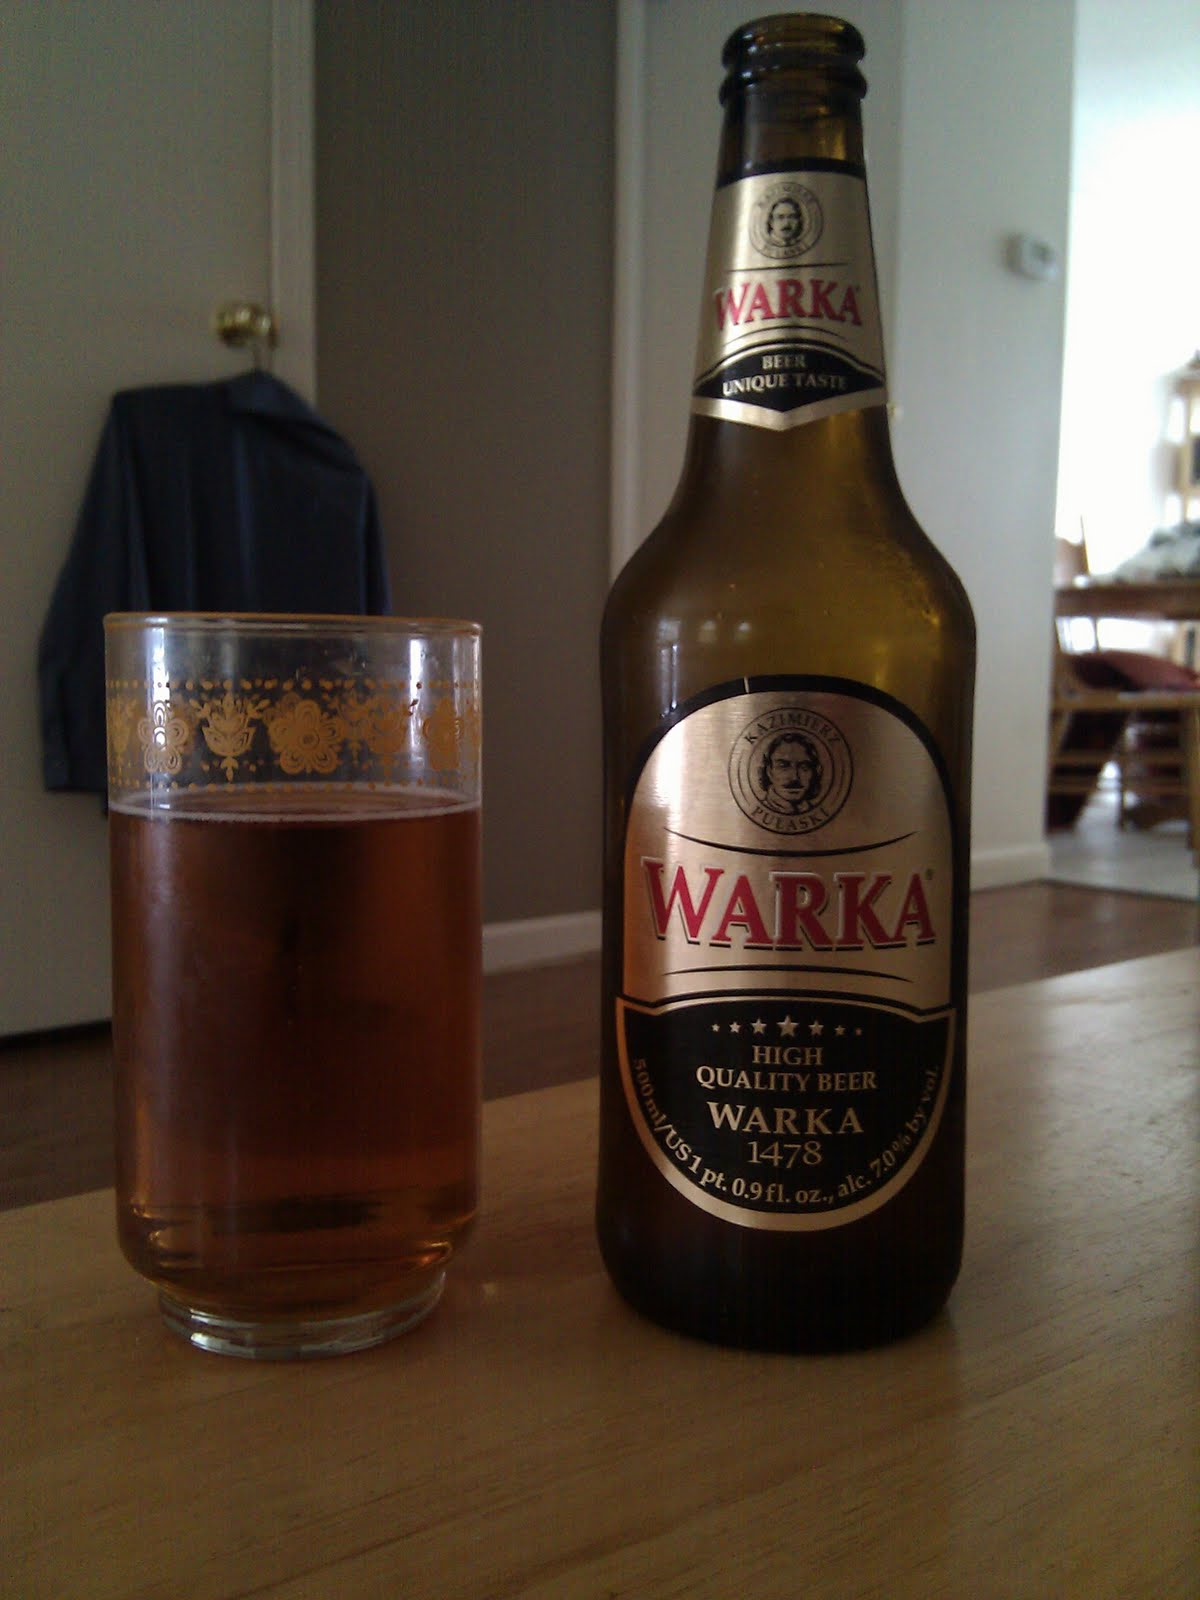 Warka Brewery S Strong Lager I Love The Sauce